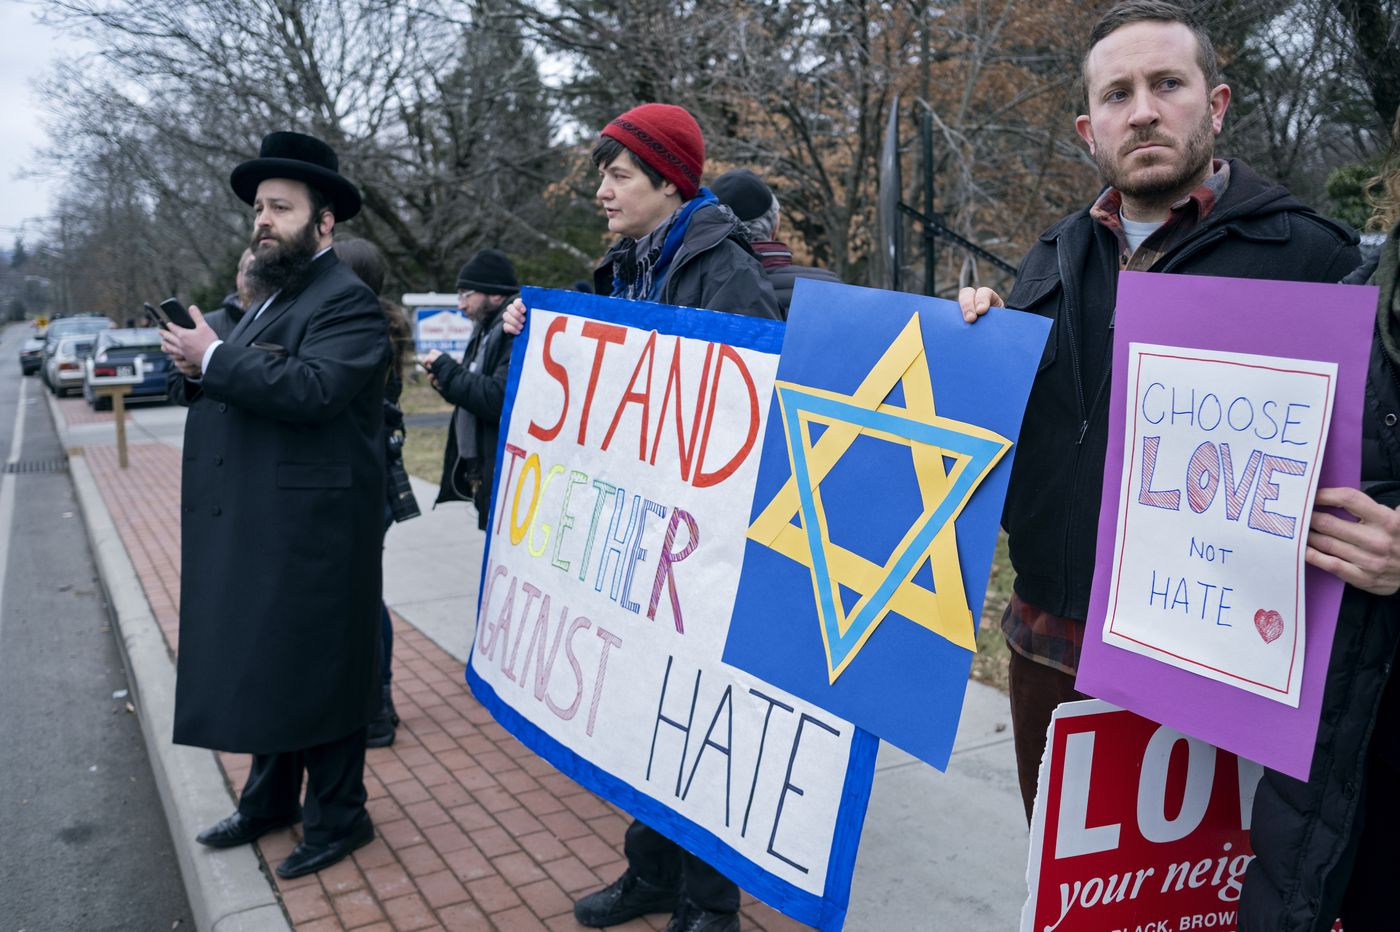 As anti-Semitism rises, Philadelphia must find new ways to promote community and civility | Opinion